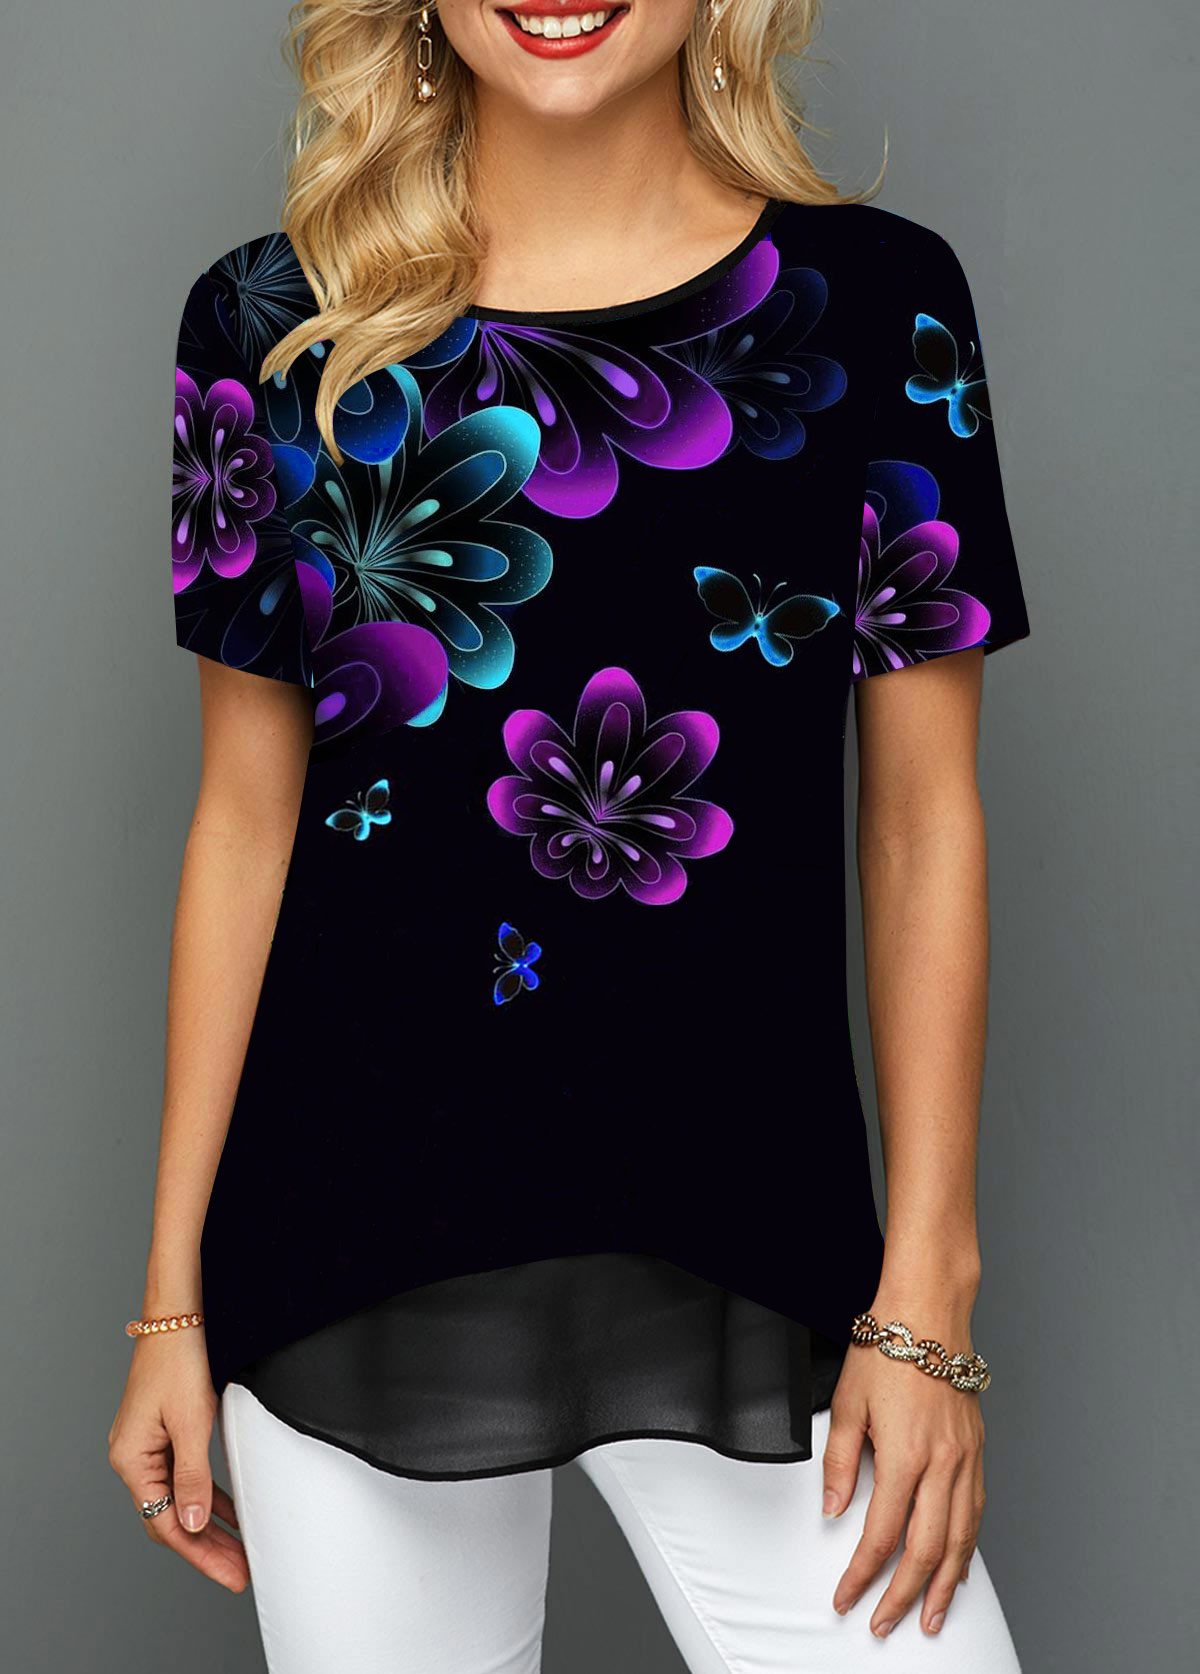 Printed Round Neck Short Sleeve T Shirt